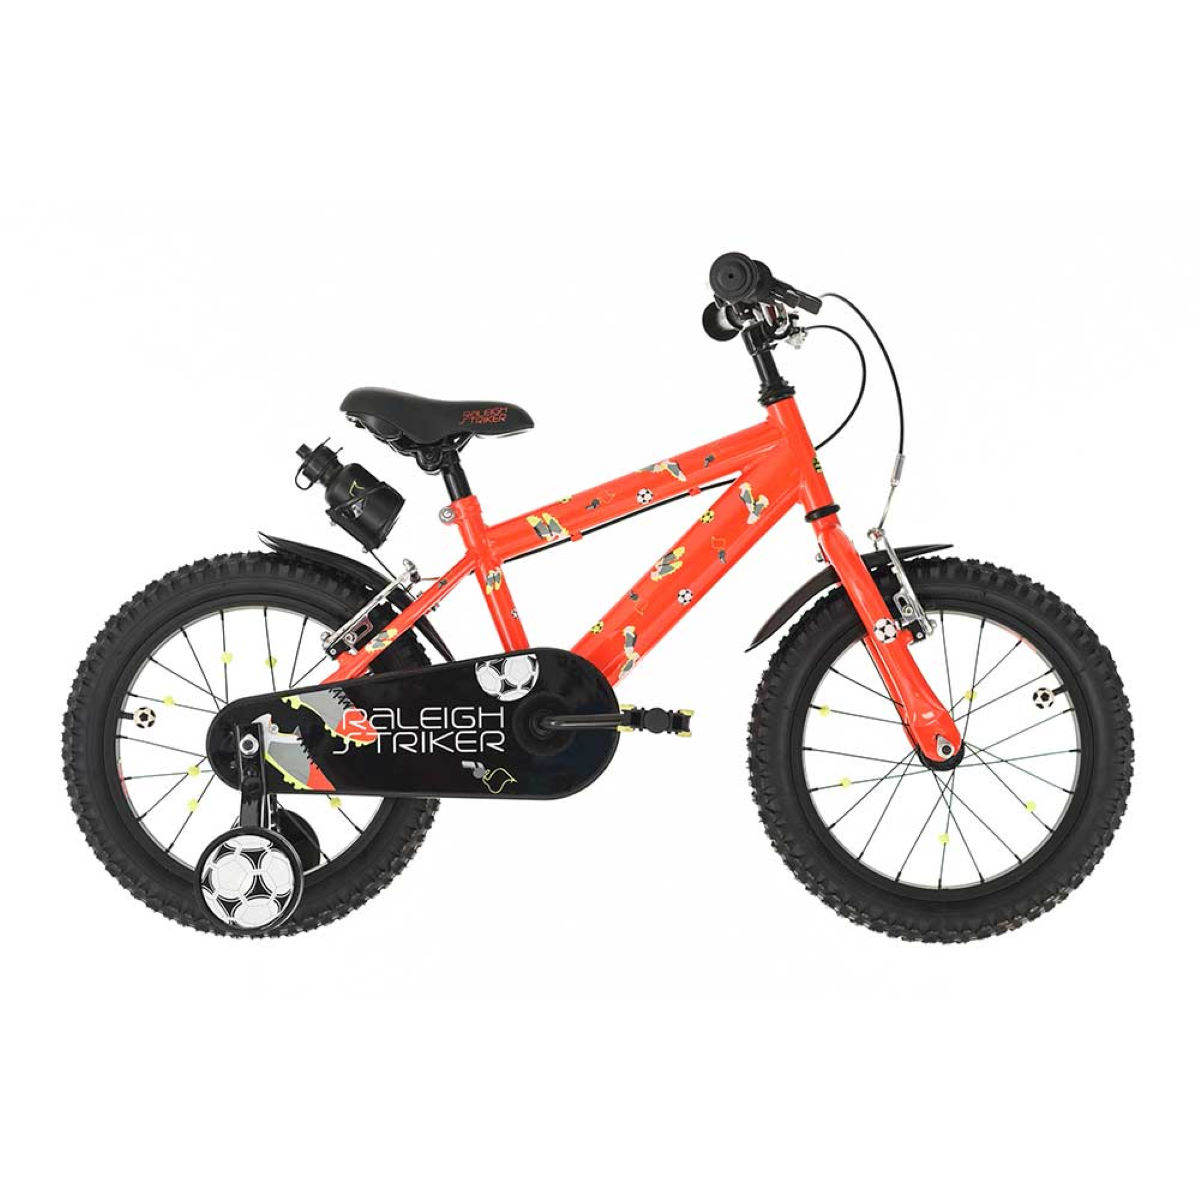 Raleigh Striker 14 (2017) Kids Bike   Kids Bikes  Under 7